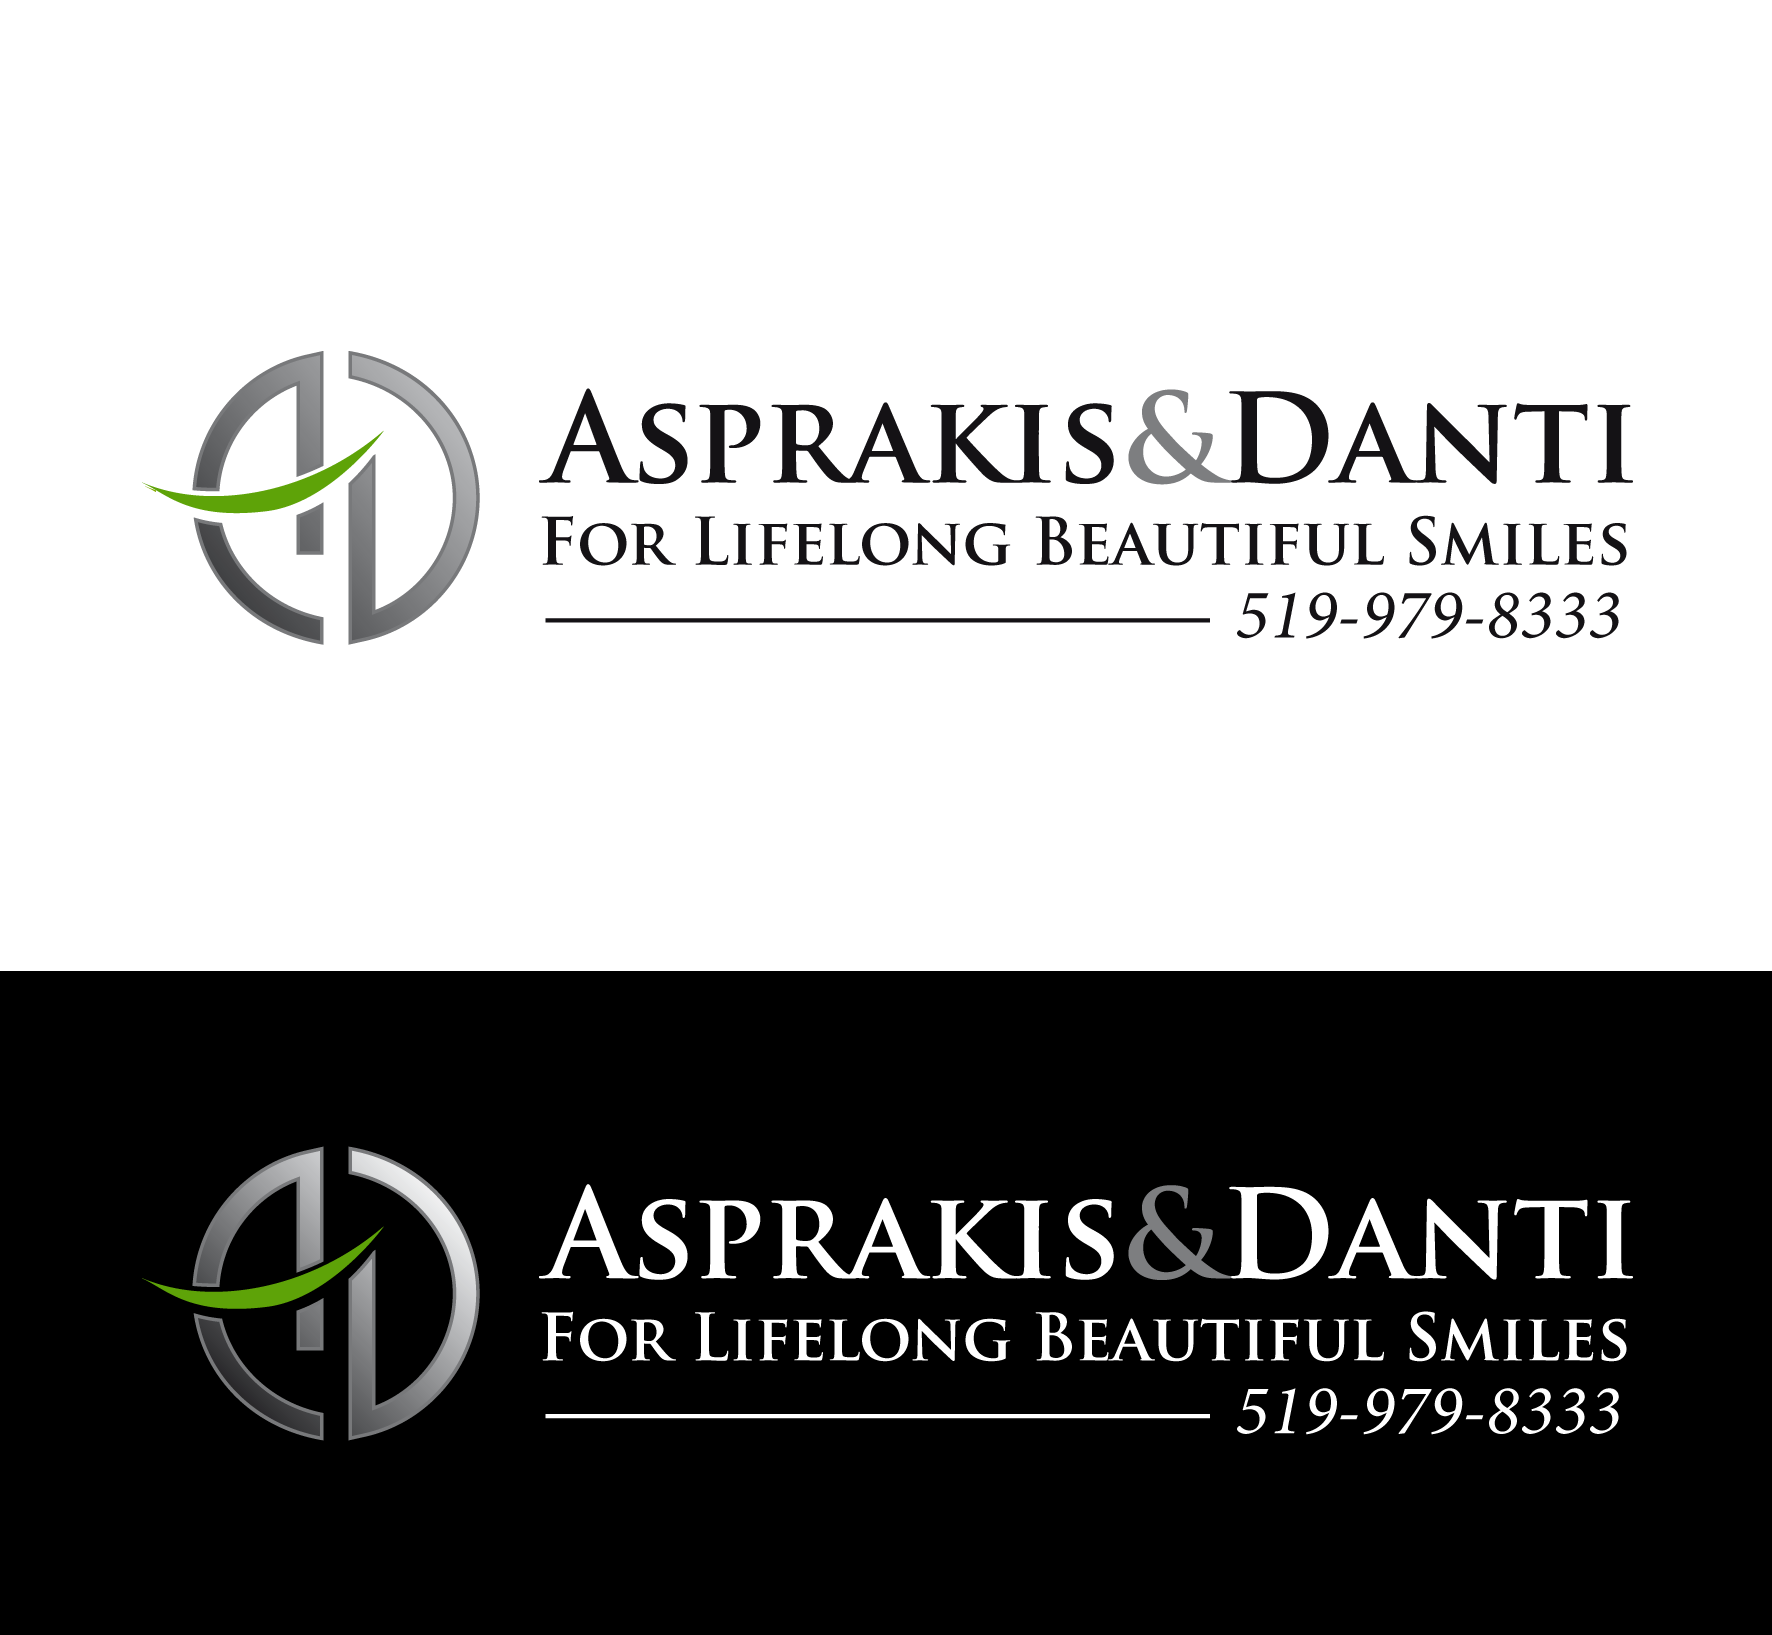 Logo Design by luna - Entry No. 80 in the Logo Design Contest Unique Logo Design Wanted for Asprakis and Danti.